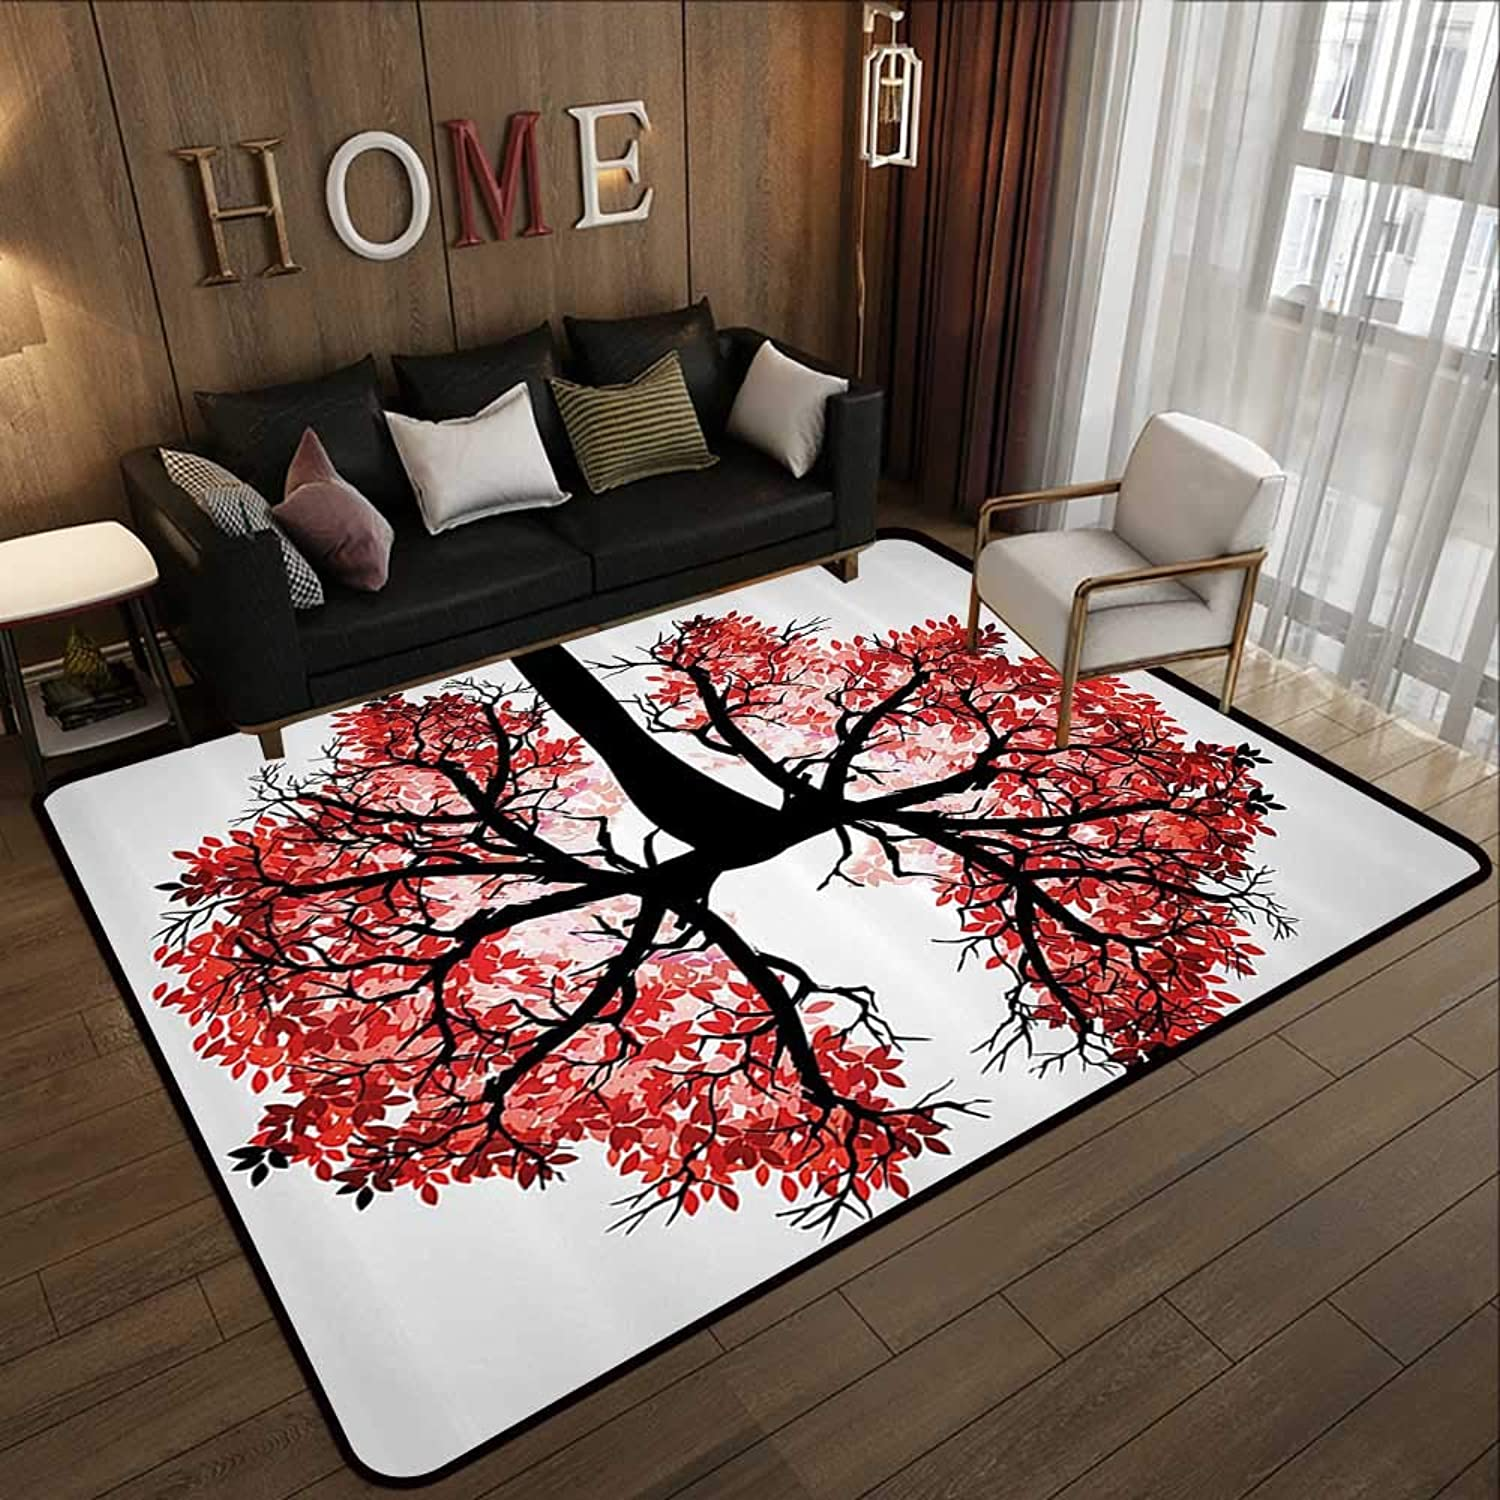 Carpet mat,Modern,Eco Environment Themed Human Lung Shaped Floral Tree Healthy Lifestyle Nature Print,Red Brown 47 x 59  Floor Mat Entrance Doormat